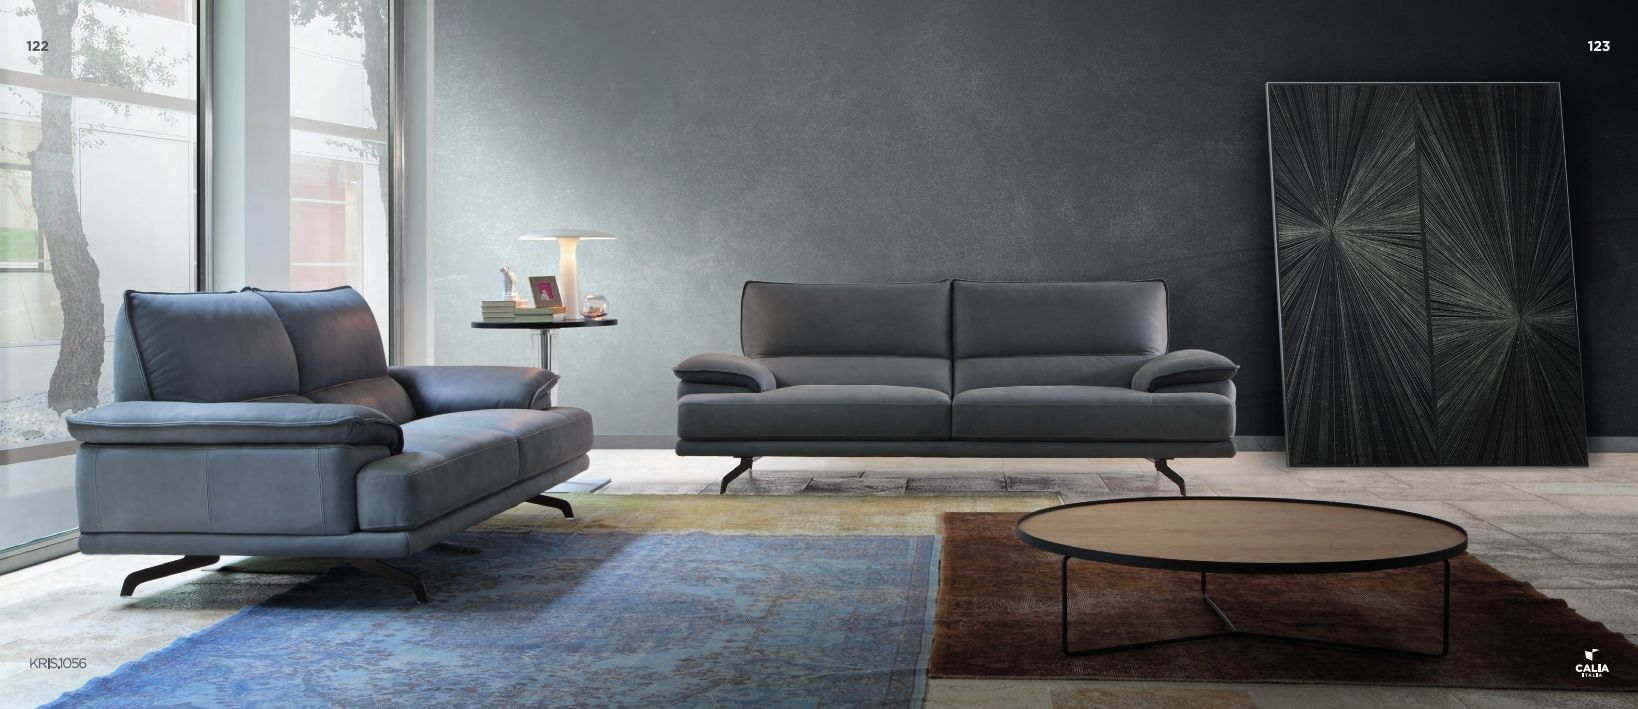 Italian Sofas Upholstered Furniture Calia Italia Kris